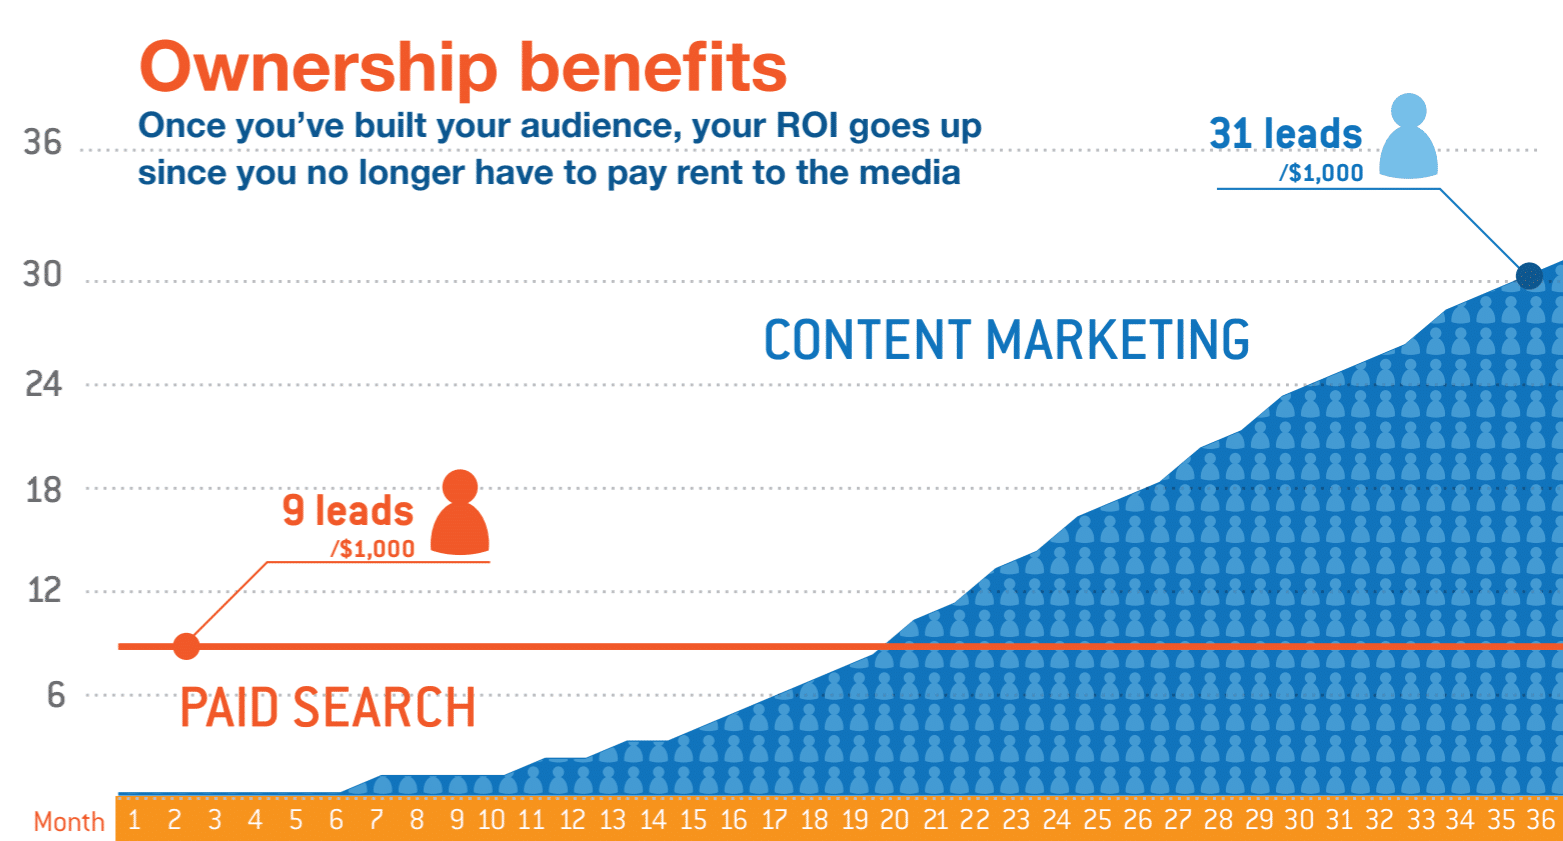 Content marketing ROI - per dollar, content marketing produces 3 times more leads.